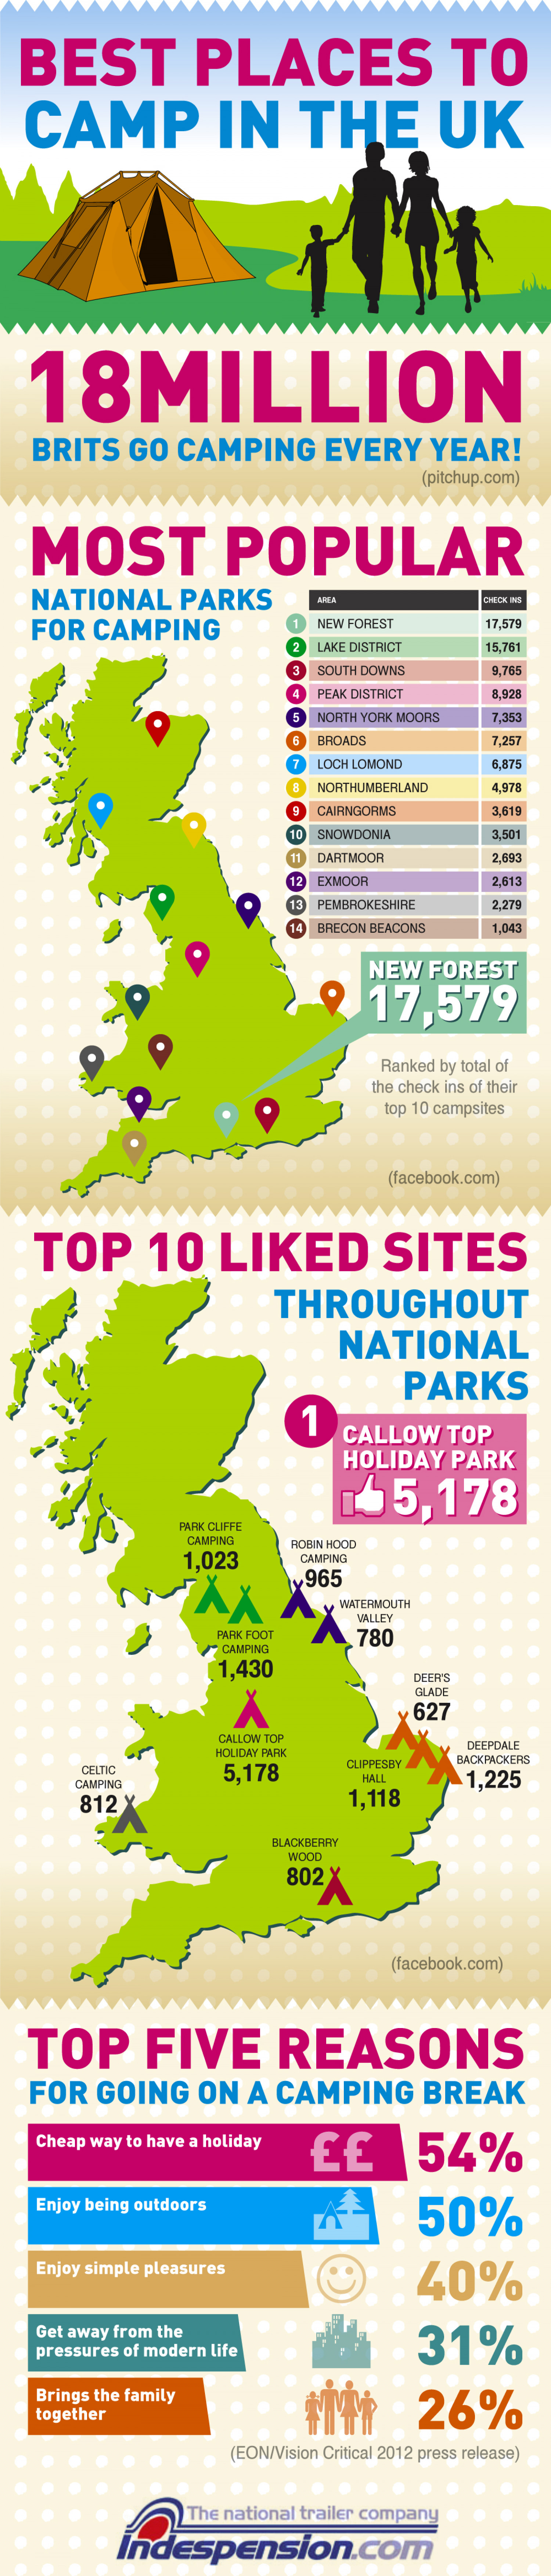 Best Places to Camp in the UK Infographic